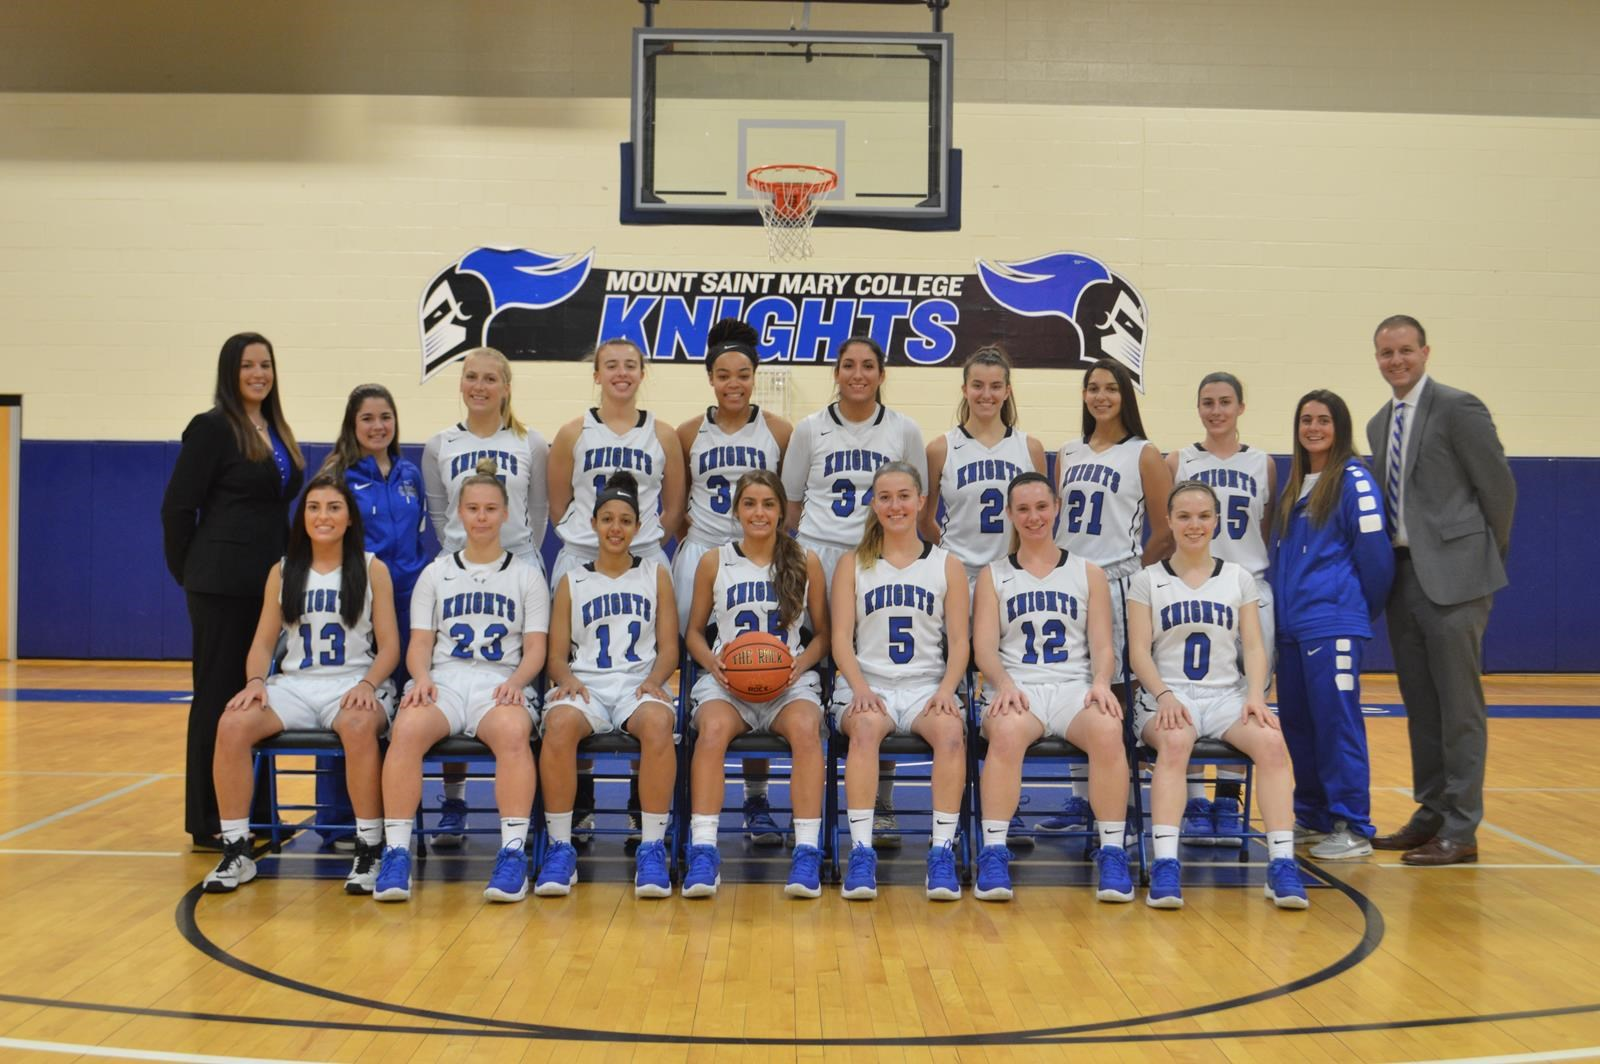 701f0bf063fb 2017-18 Women s Basketball Roster - Mount Saint Mary College Athletics